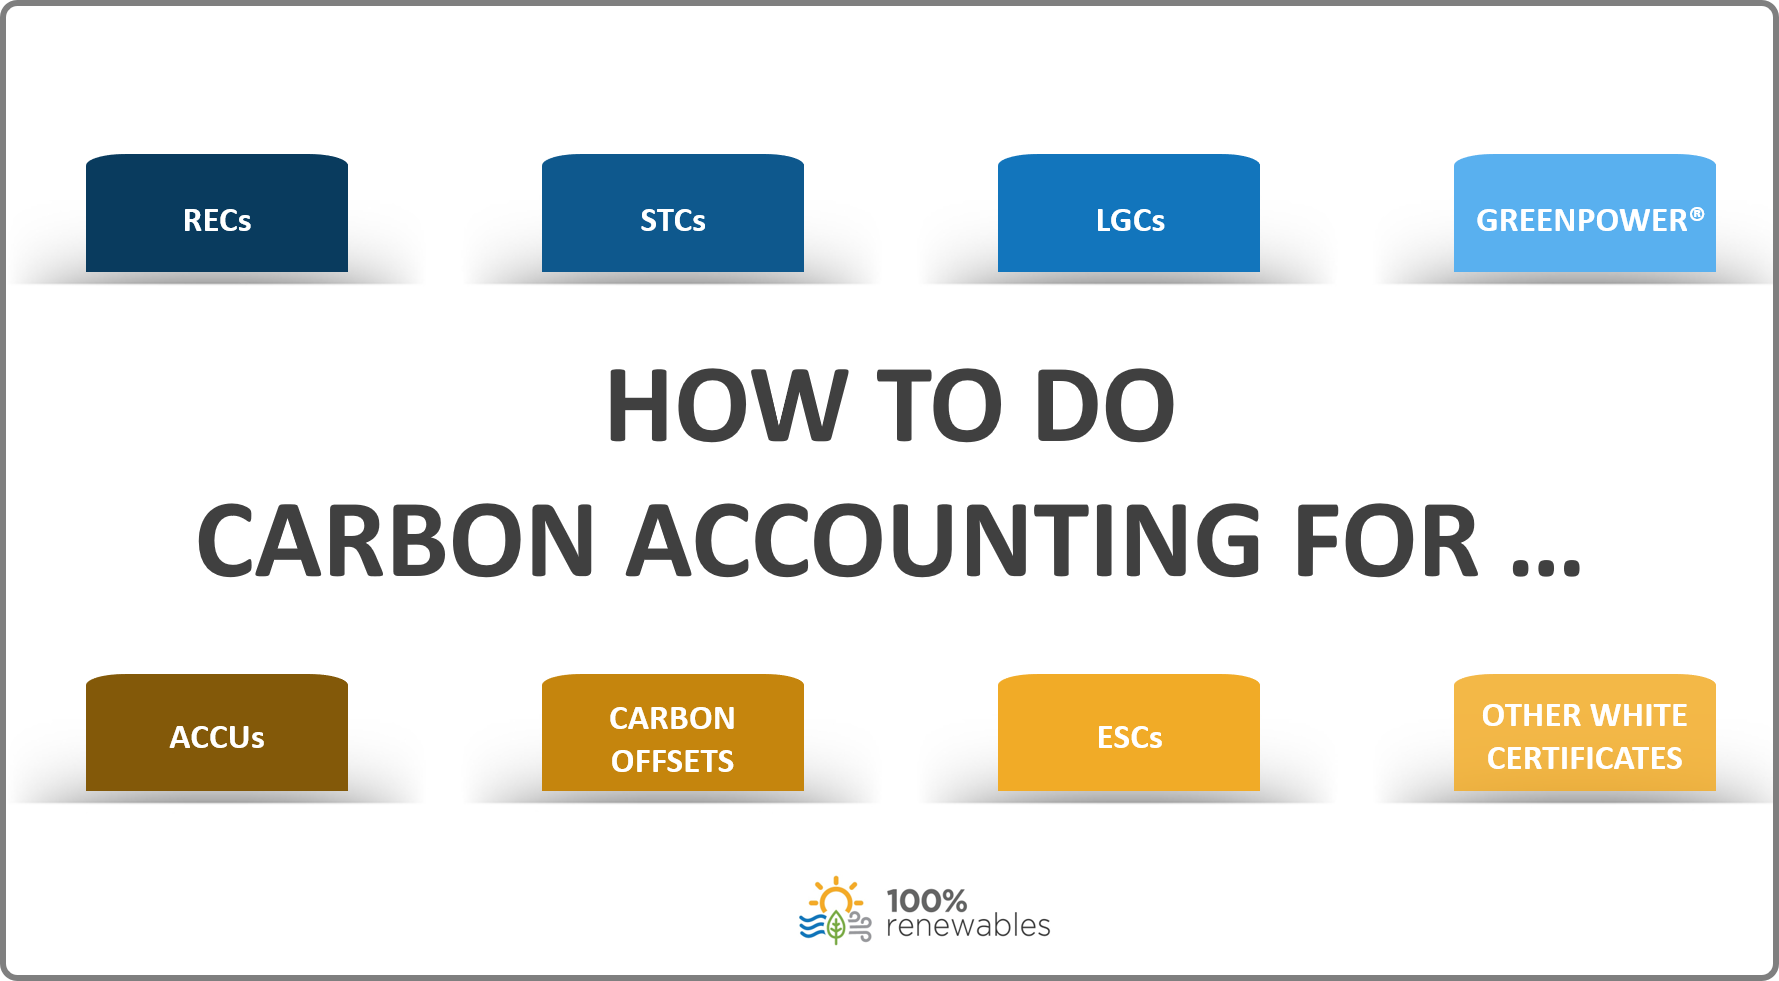 100% RE - Carbon accounting for LGCs STCs ACCUs ESCs etc